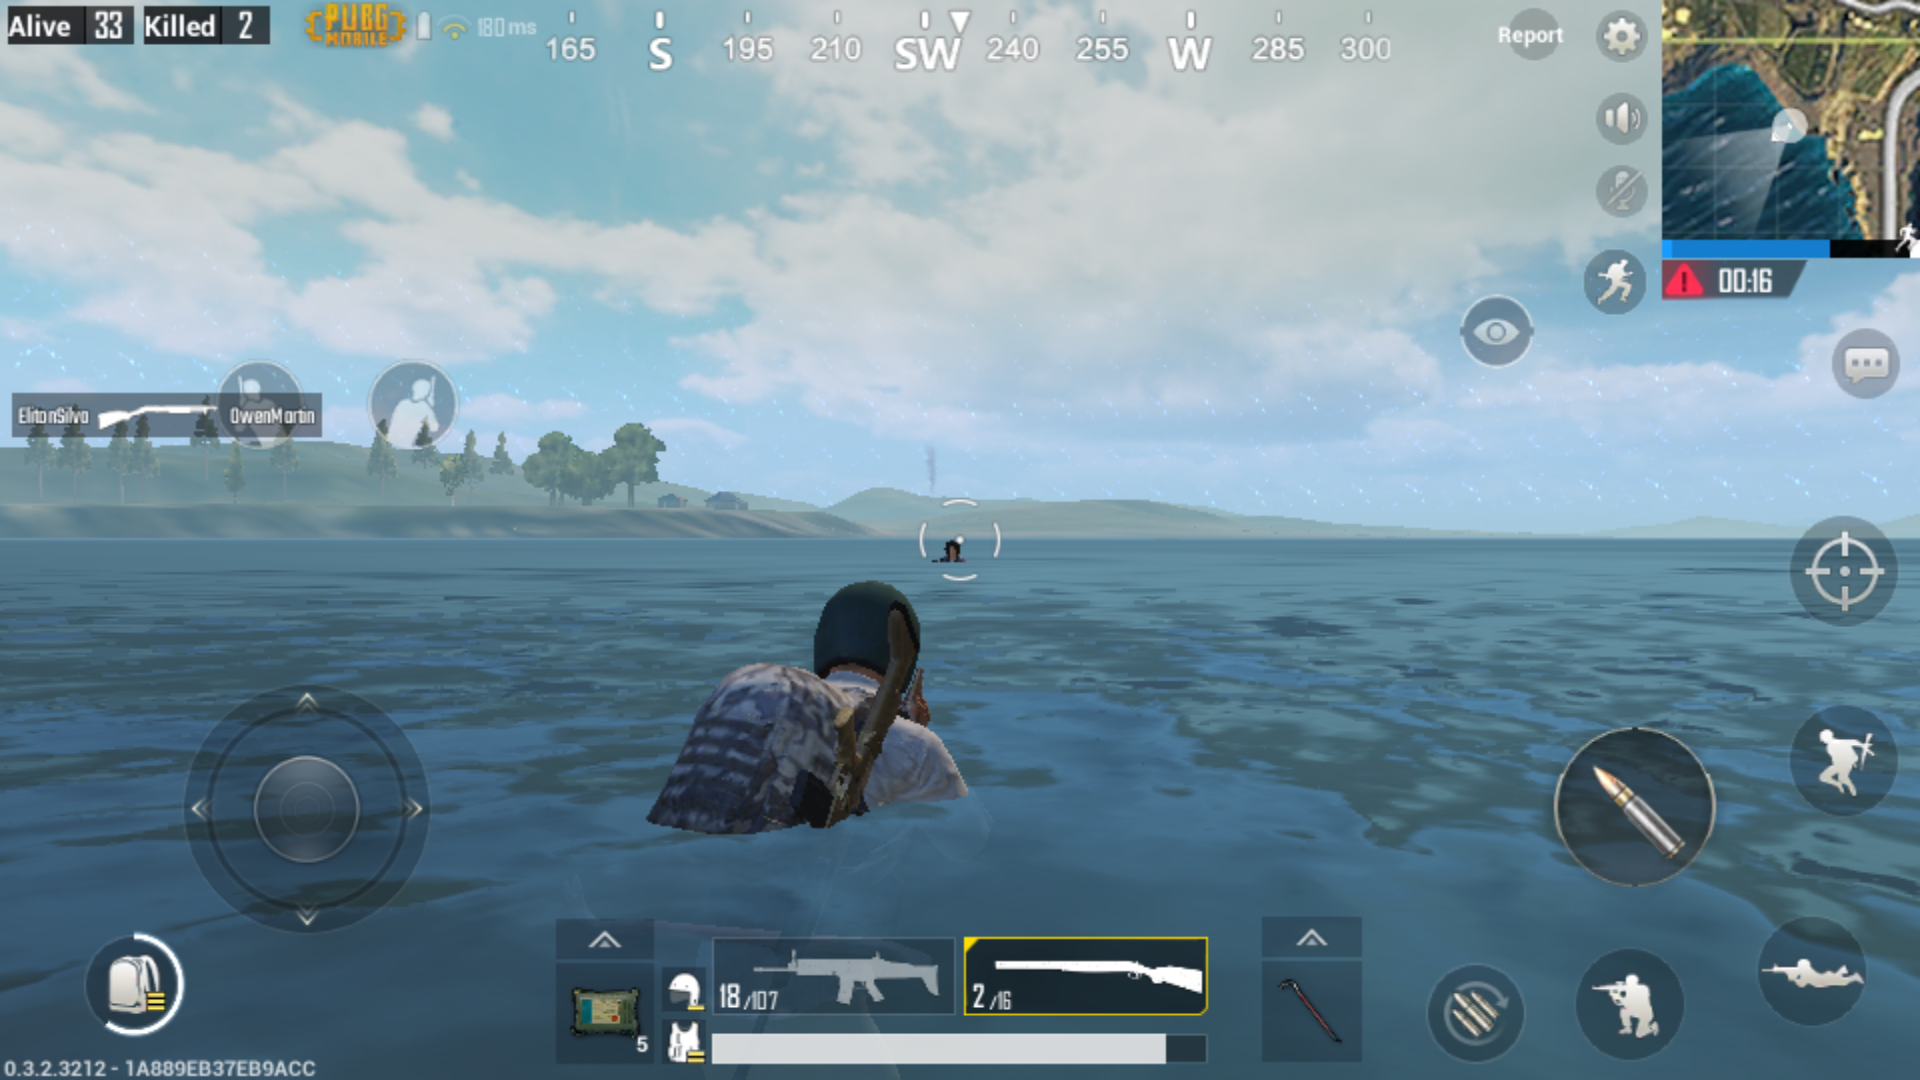 Playerunknown's Battleground Mobile (PUBG) soft launched in